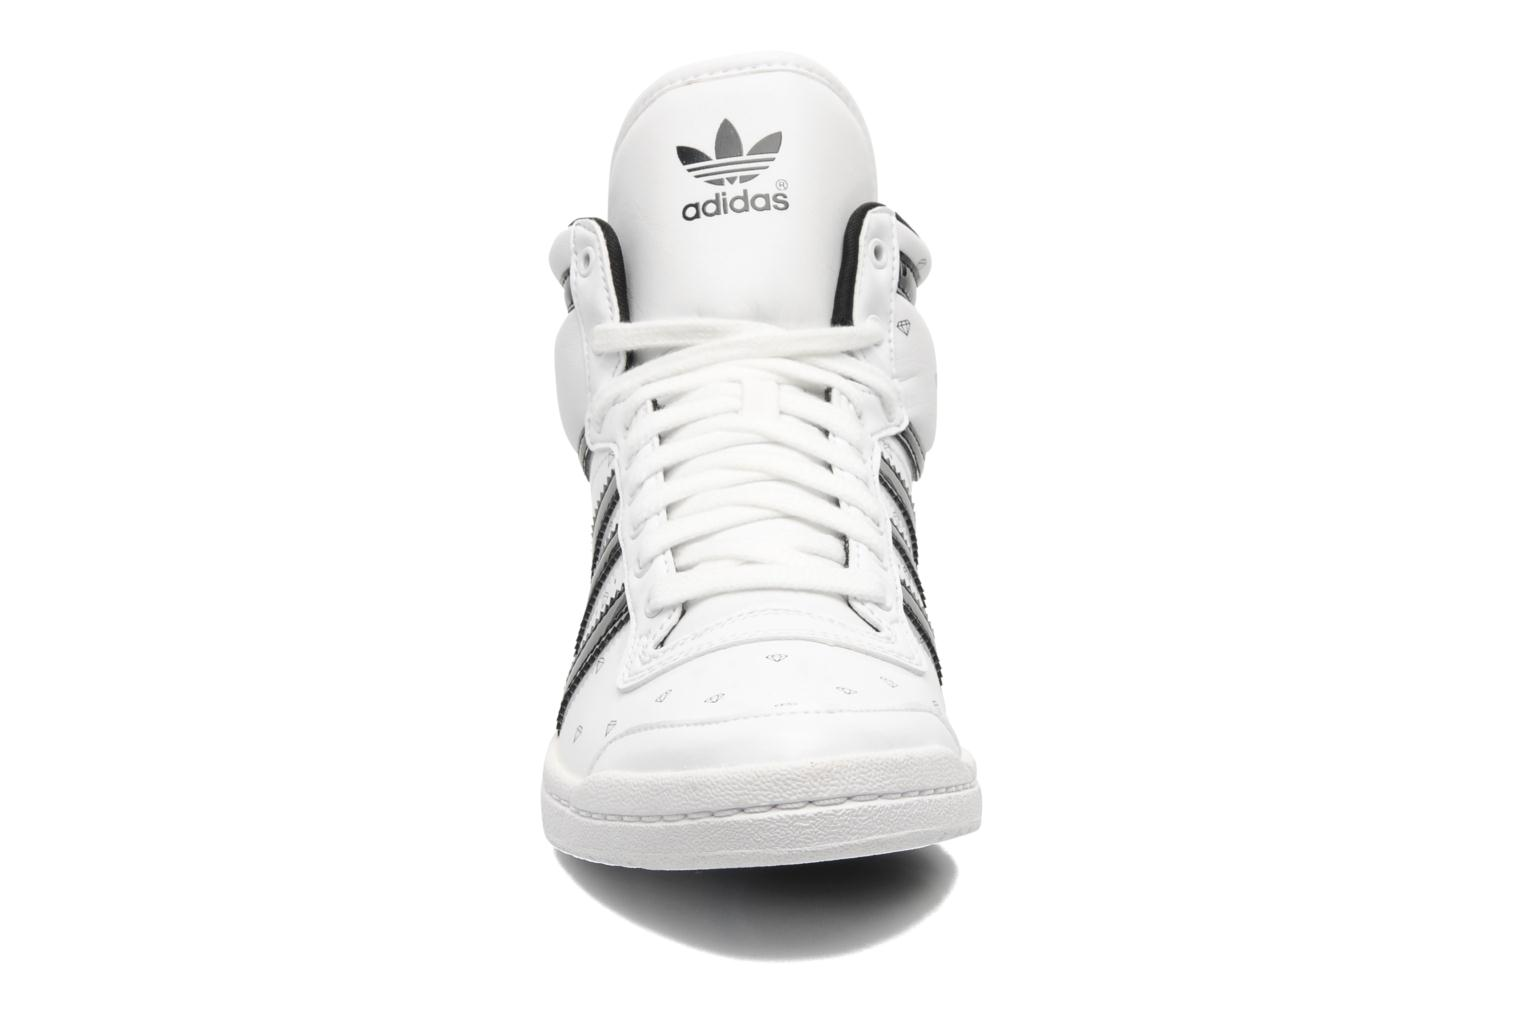 adidas originals top ten hi sleek w trainers in white at. Black Bedroom Furniture Sets. Home Design Ideas